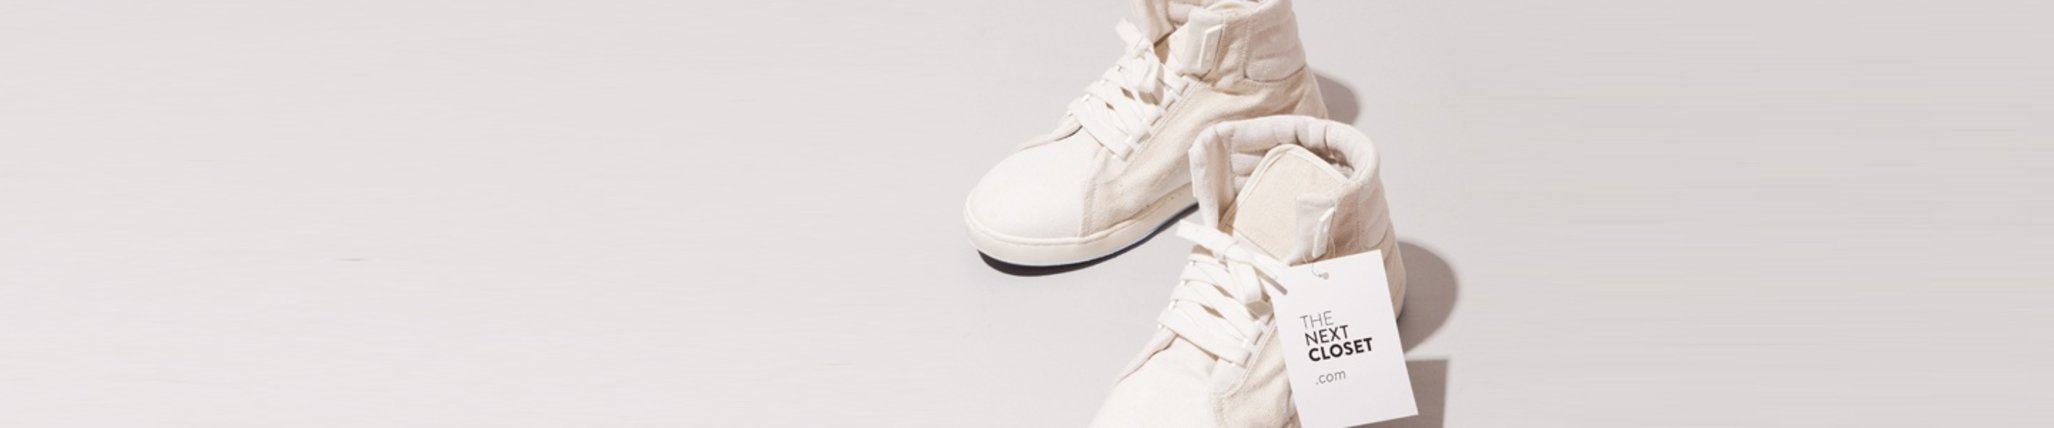 M banner sneakers  1